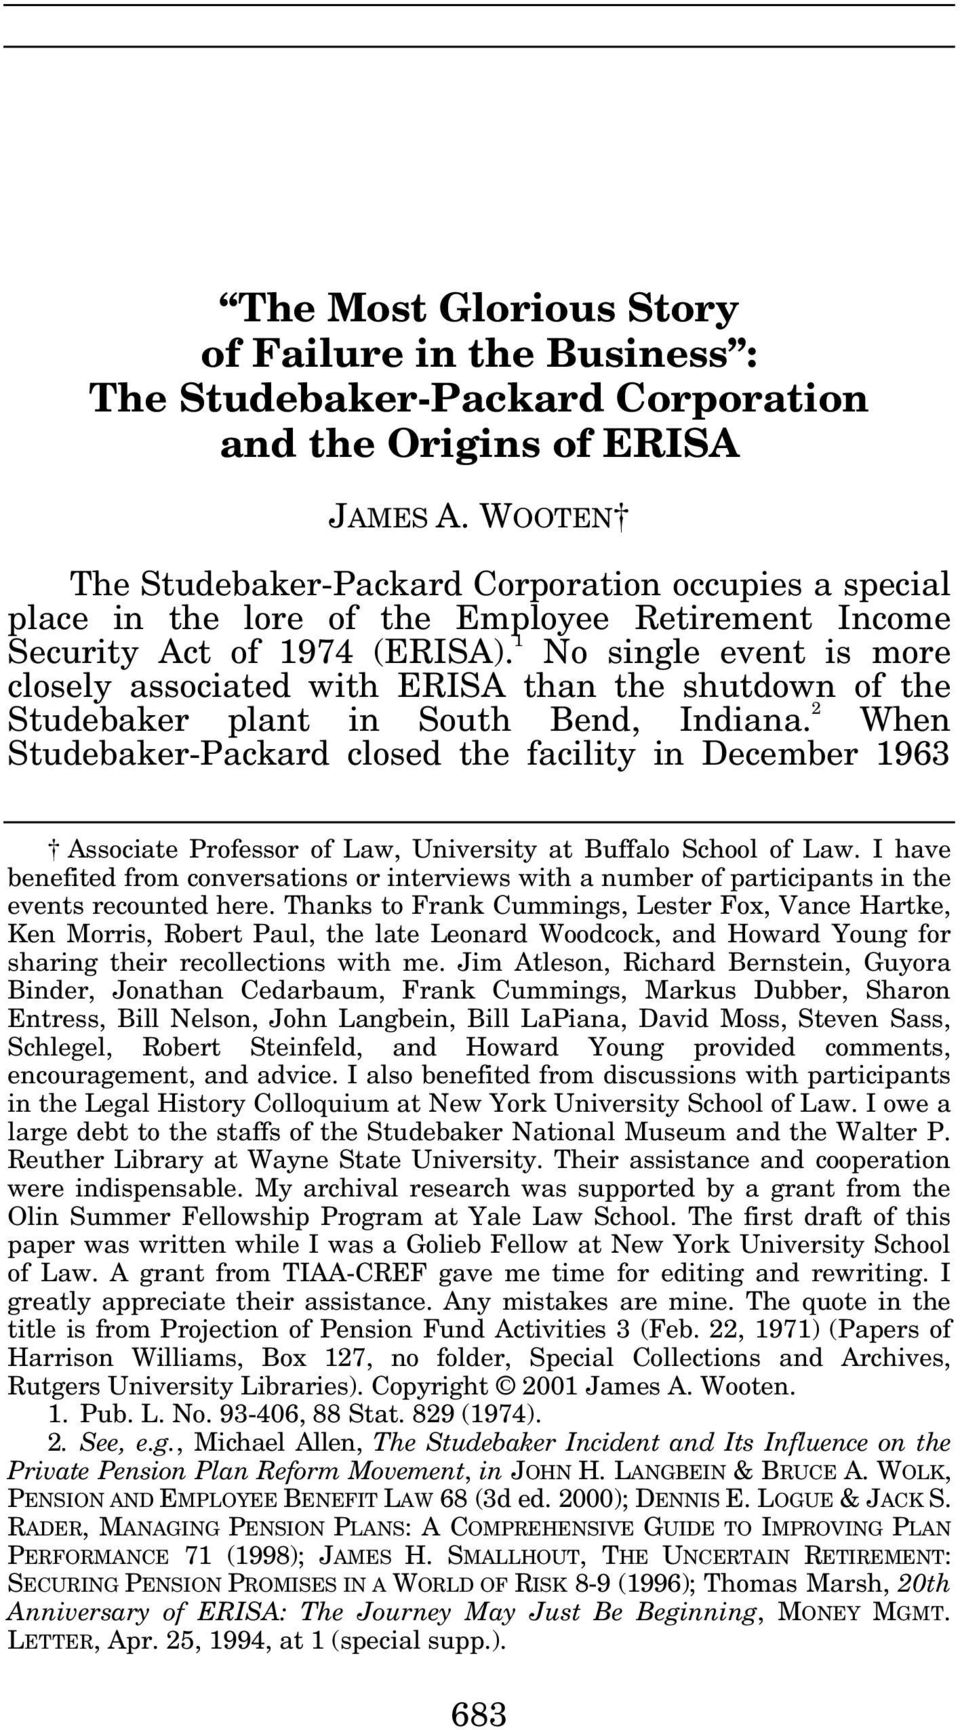 1 No single event is more closely associated with ERISA than the shutdown of the Studebaker plant in South Bend, Indiana.